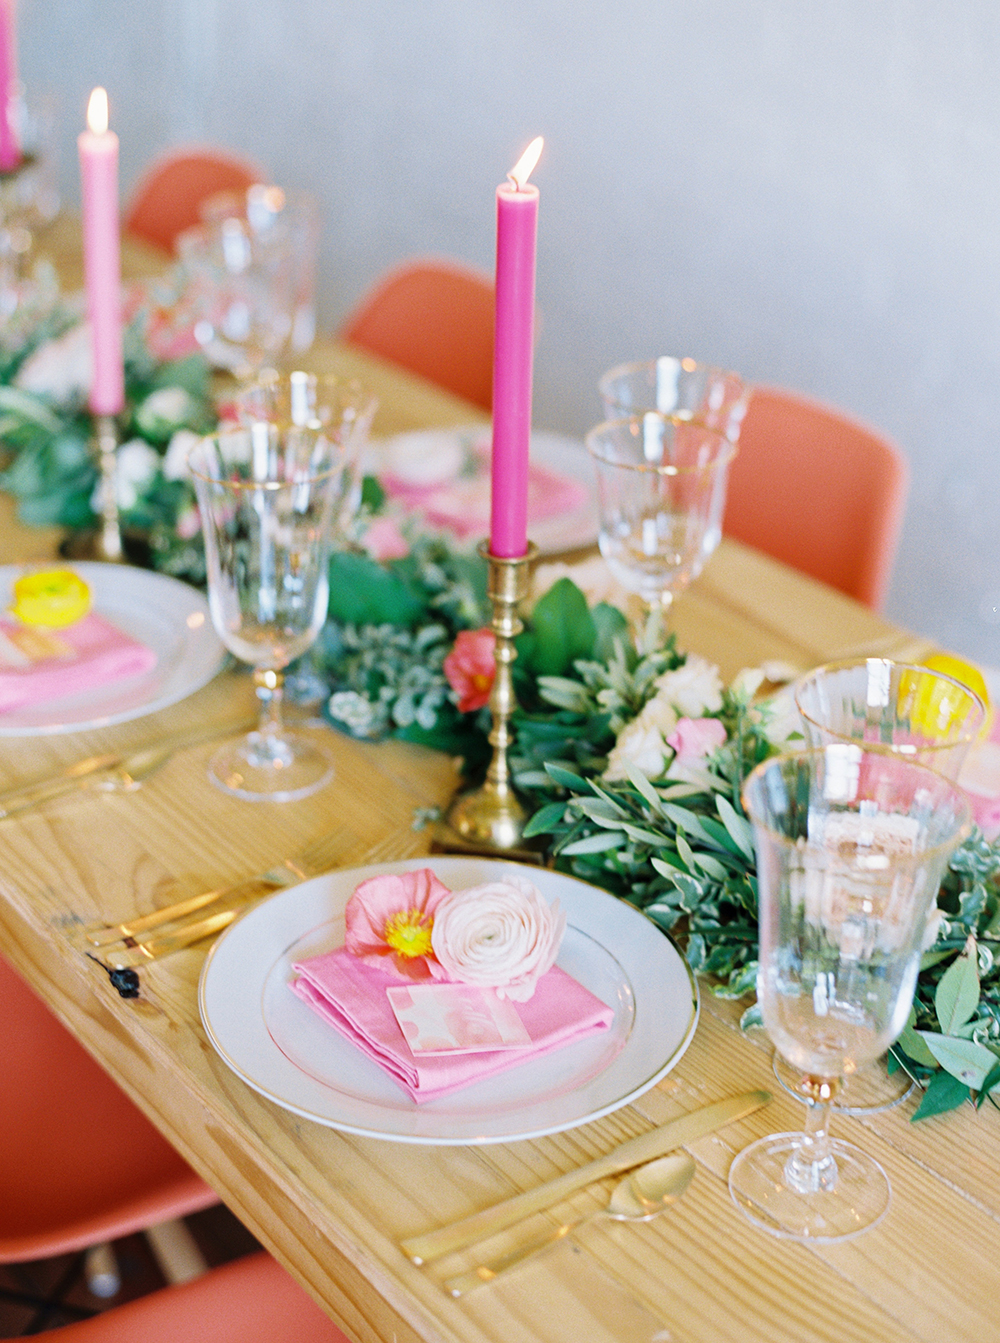 spring wedding receptions - photo by Jessica Gold Photography http://ruffledblog.com/vibrant-summer-wedding-inspiration-with-fun-colors